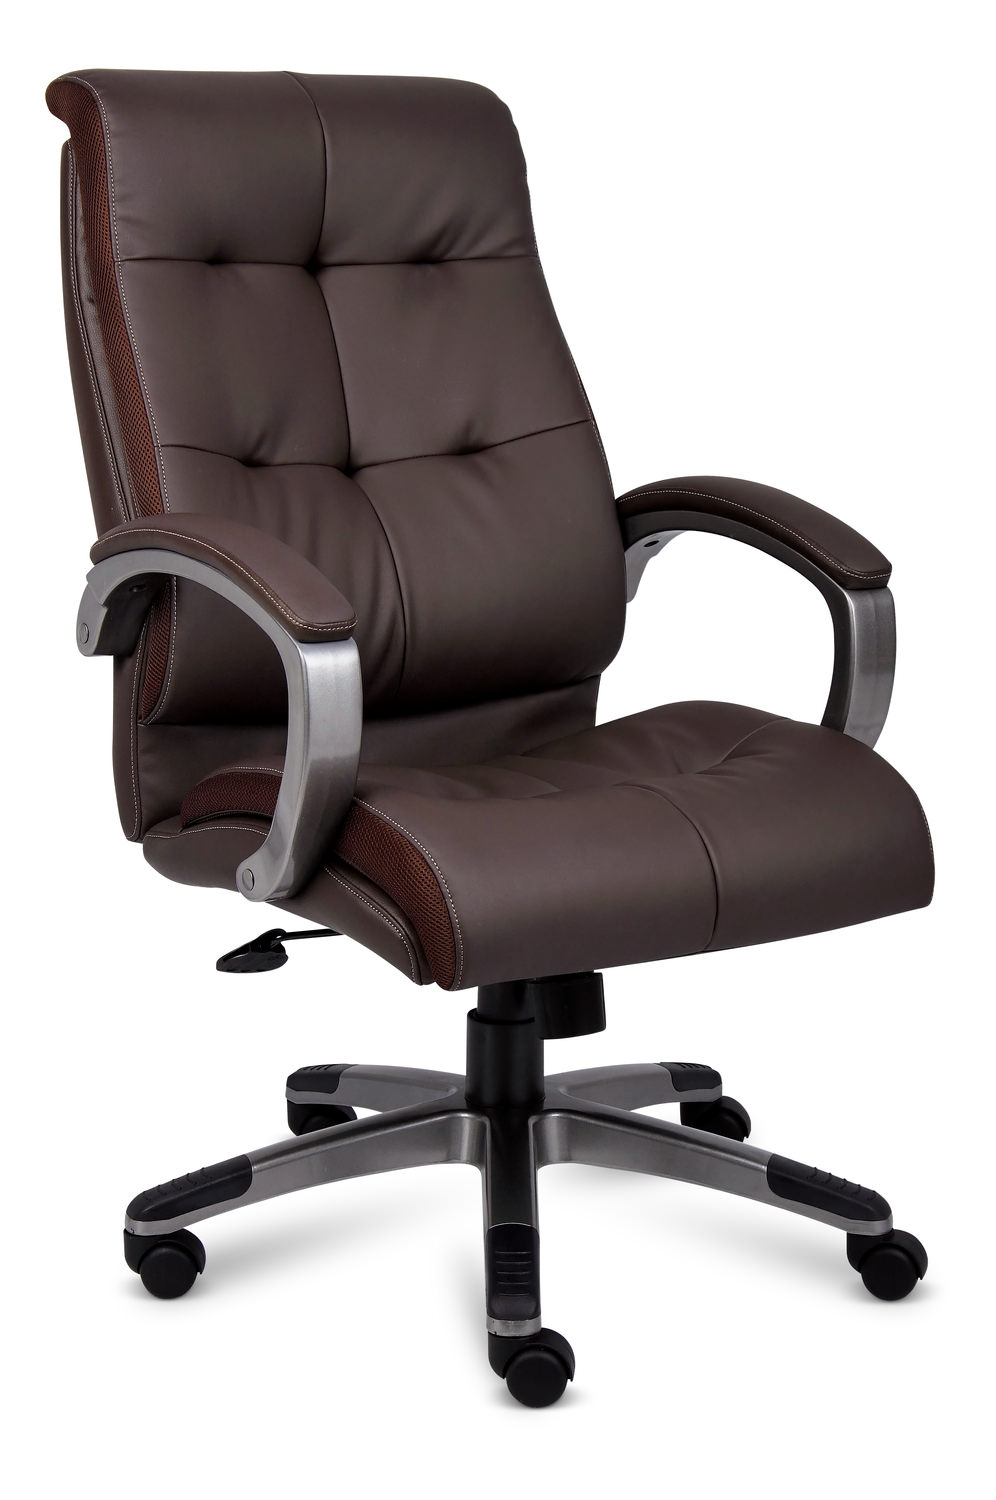 Brown Contemporary Leather Chair With Mesh Sides Executive